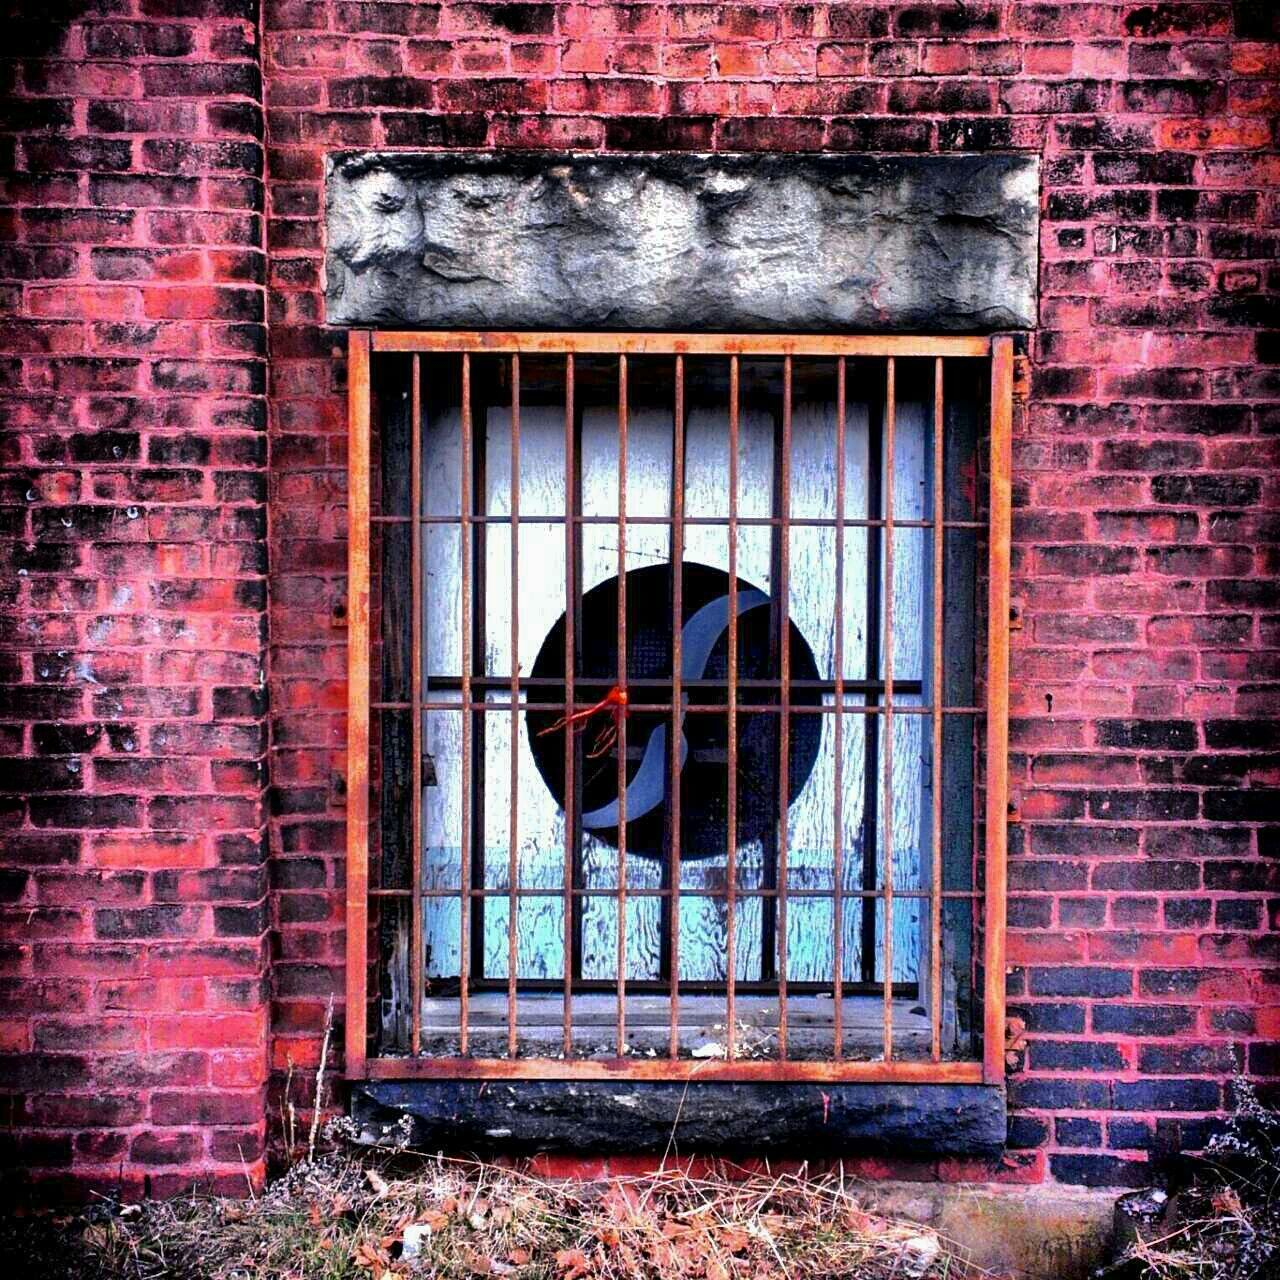 window, brick wall, architecture, built structure, no people, damaged, abandoned, red, building exterior, day, security bar, outdoors, close-up